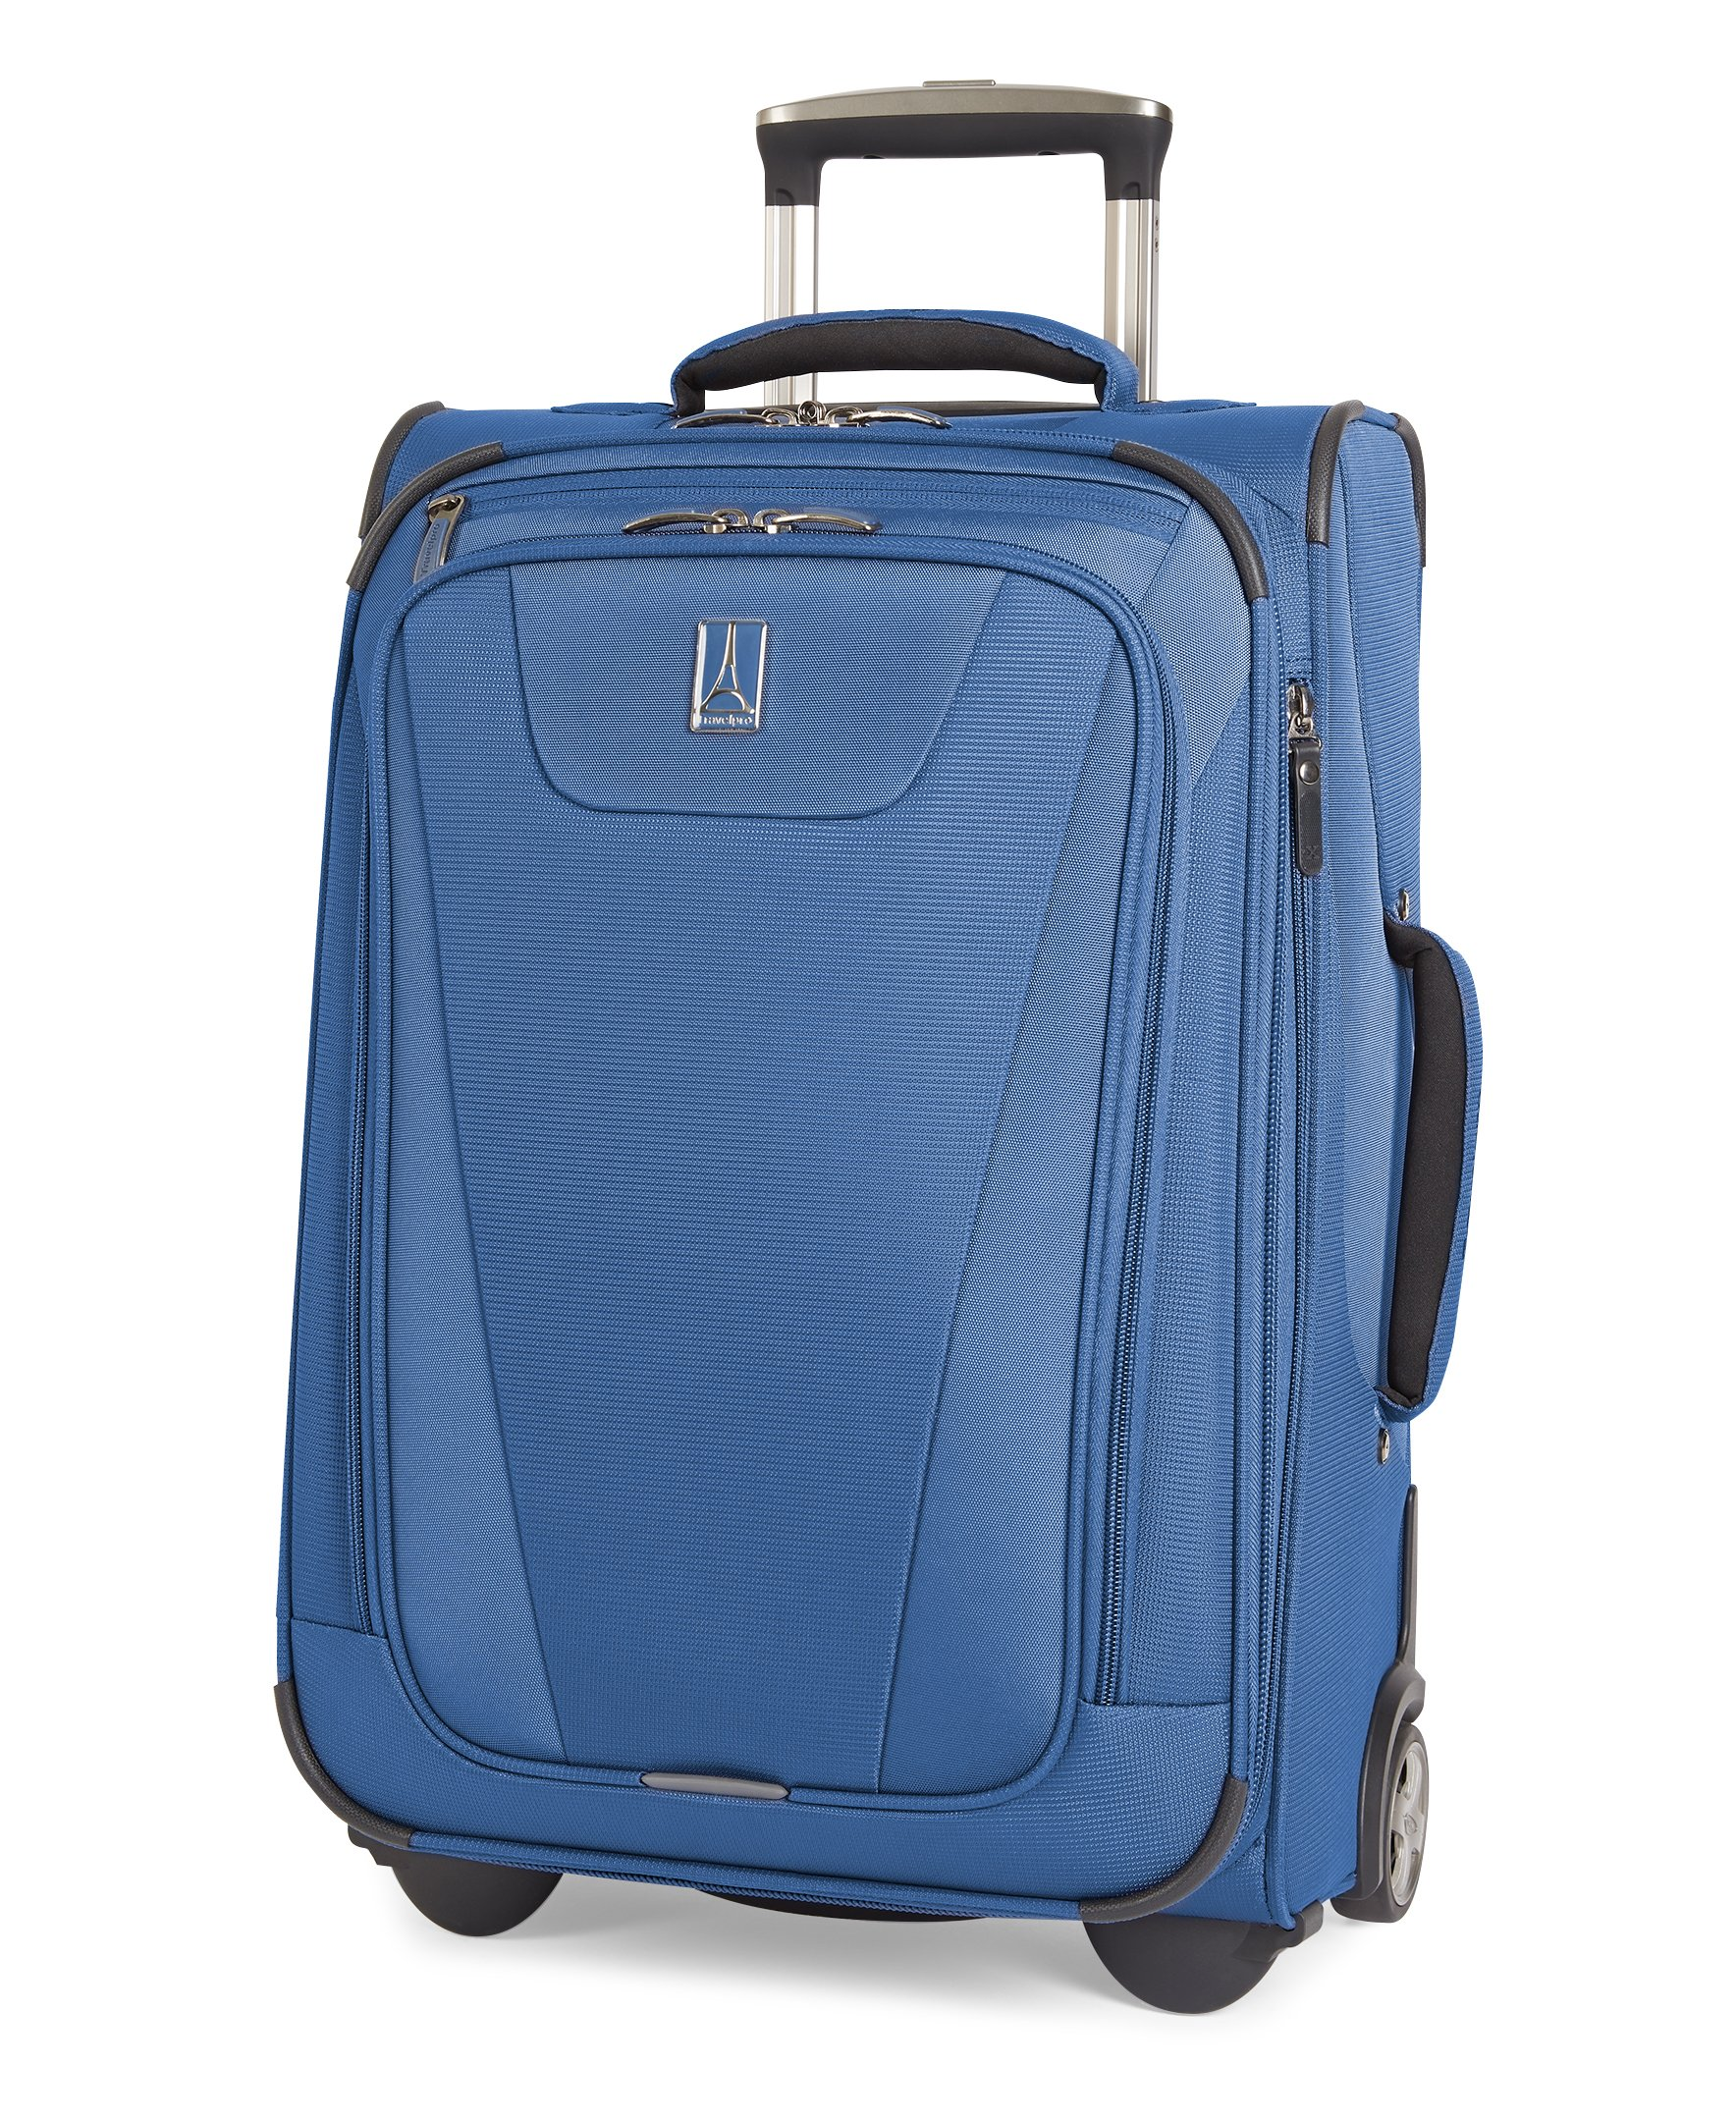 Travelpro Maxlite 4  International Expandable Rollaboard Suitcase, Blue